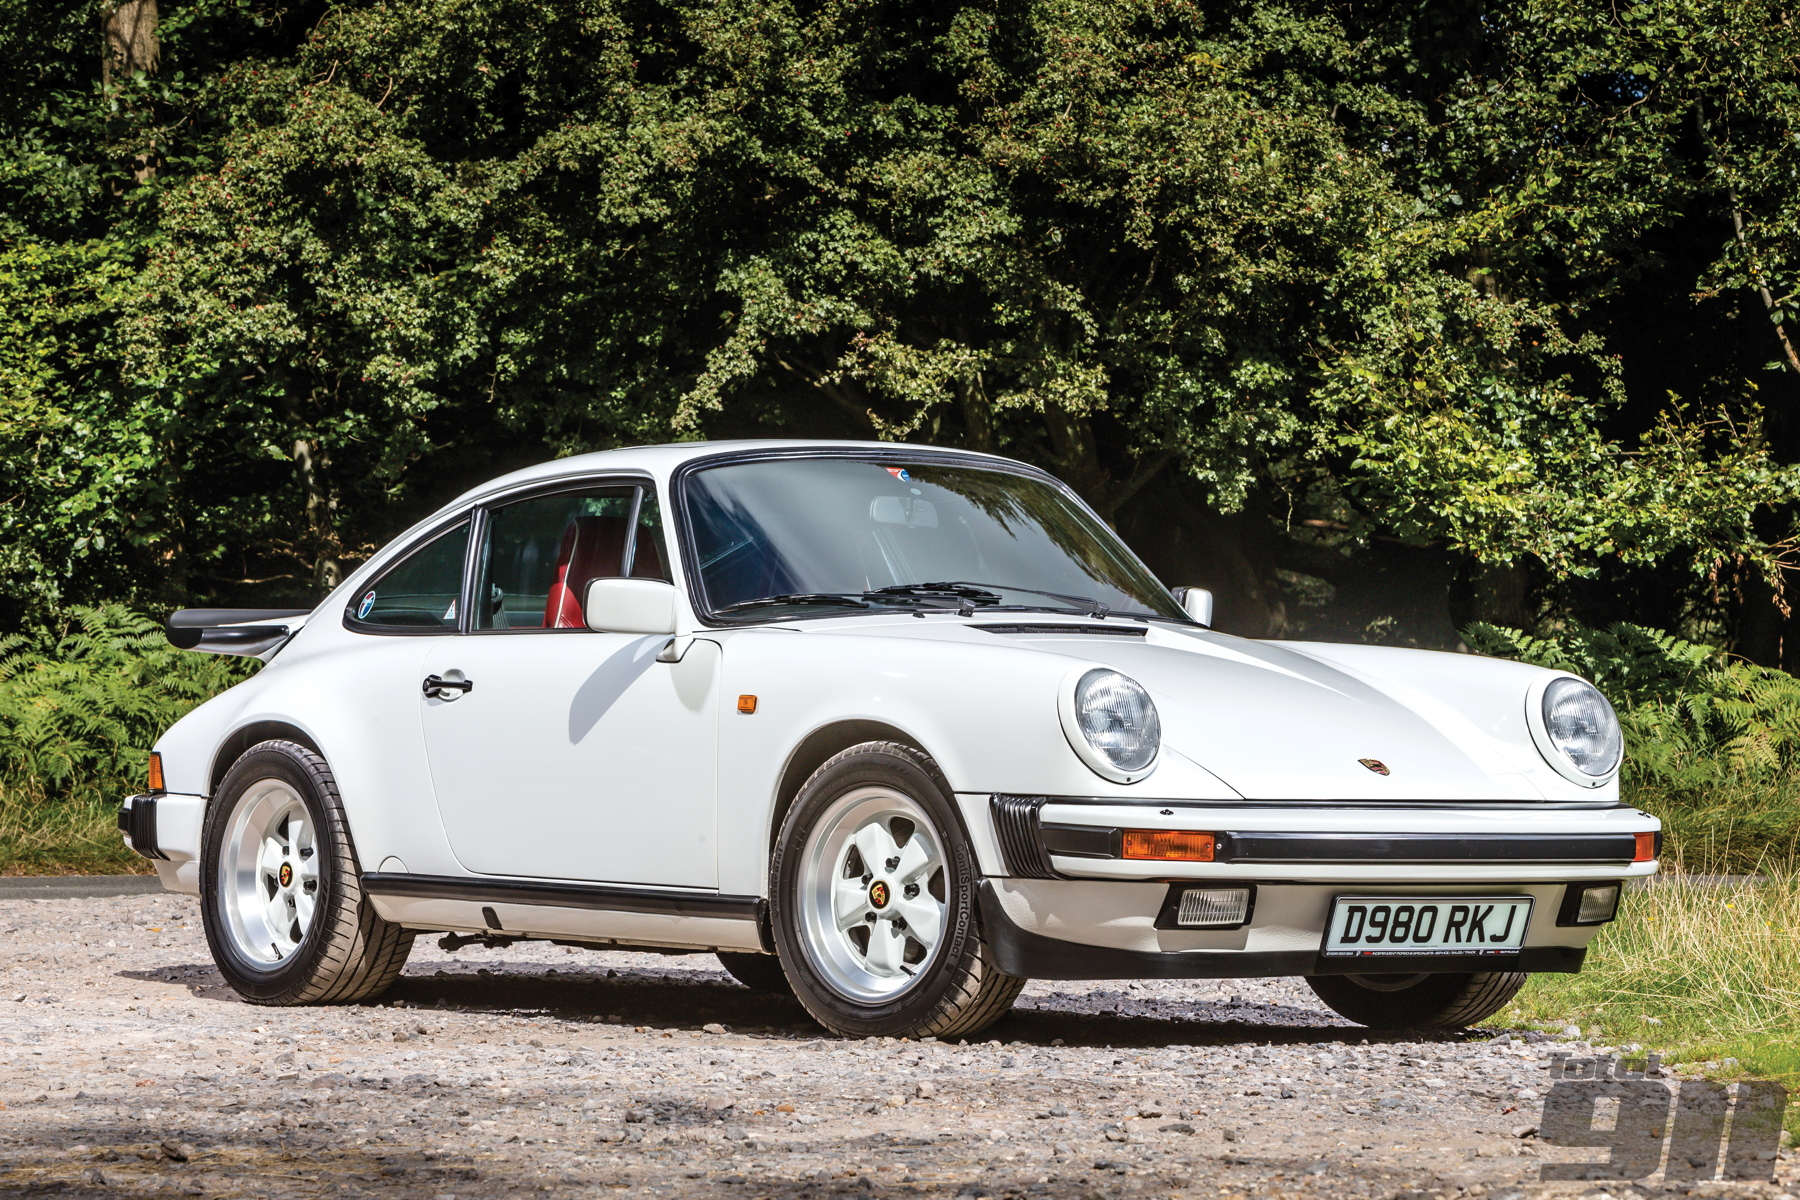 Does the 3.2 Carrera deserve its overwhelmingly positive reputation?